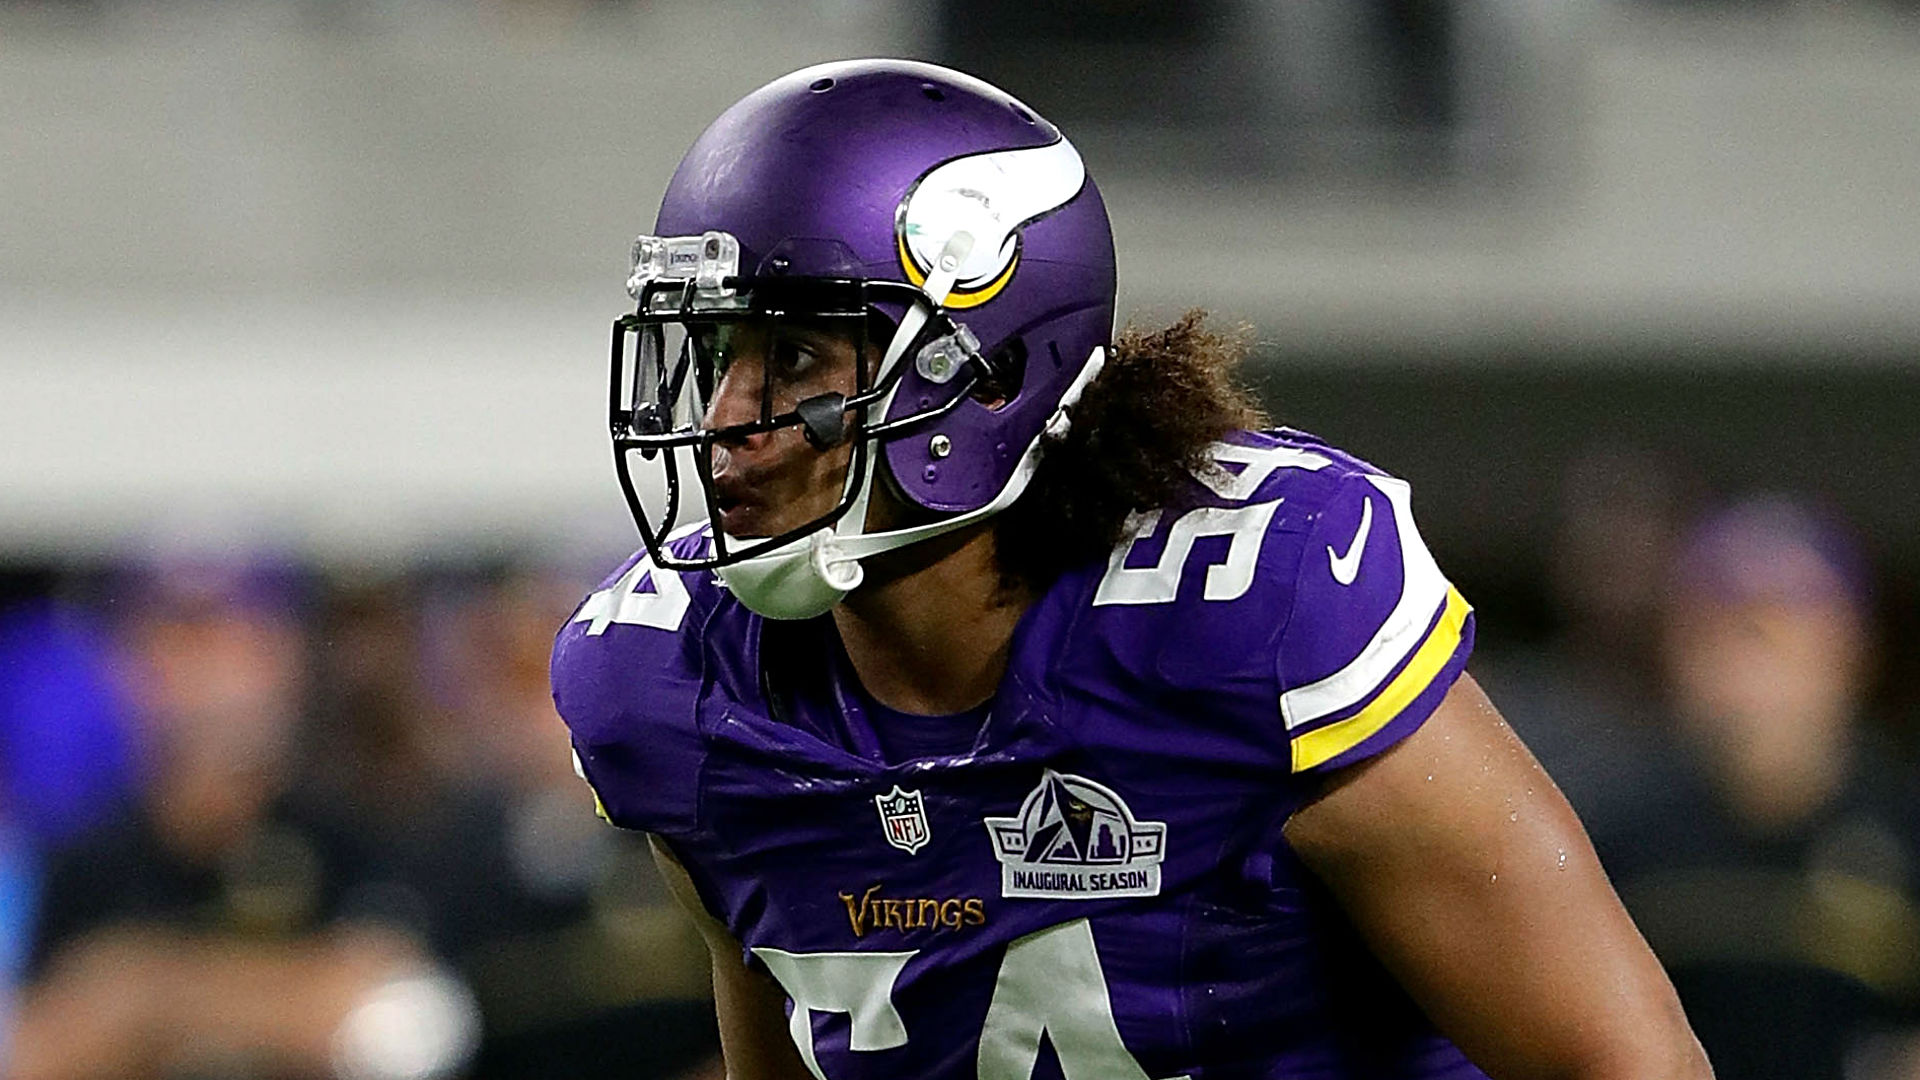 Vikings sign Eric Kendricks to lucrative five-year extension